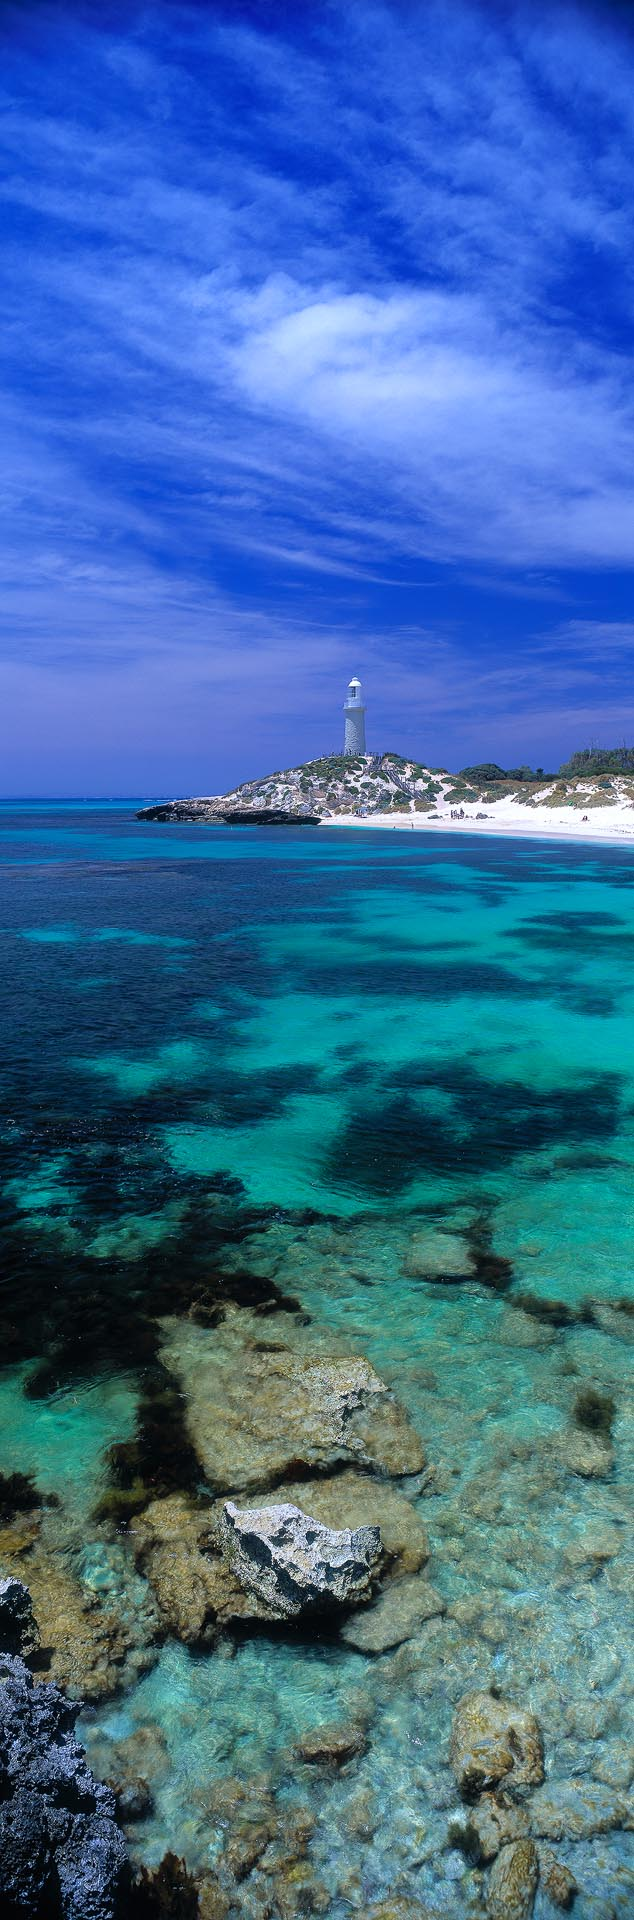 Bathurst Lighthouse, Rottnest Island, Western Australia - Christian Fletcher Gallery